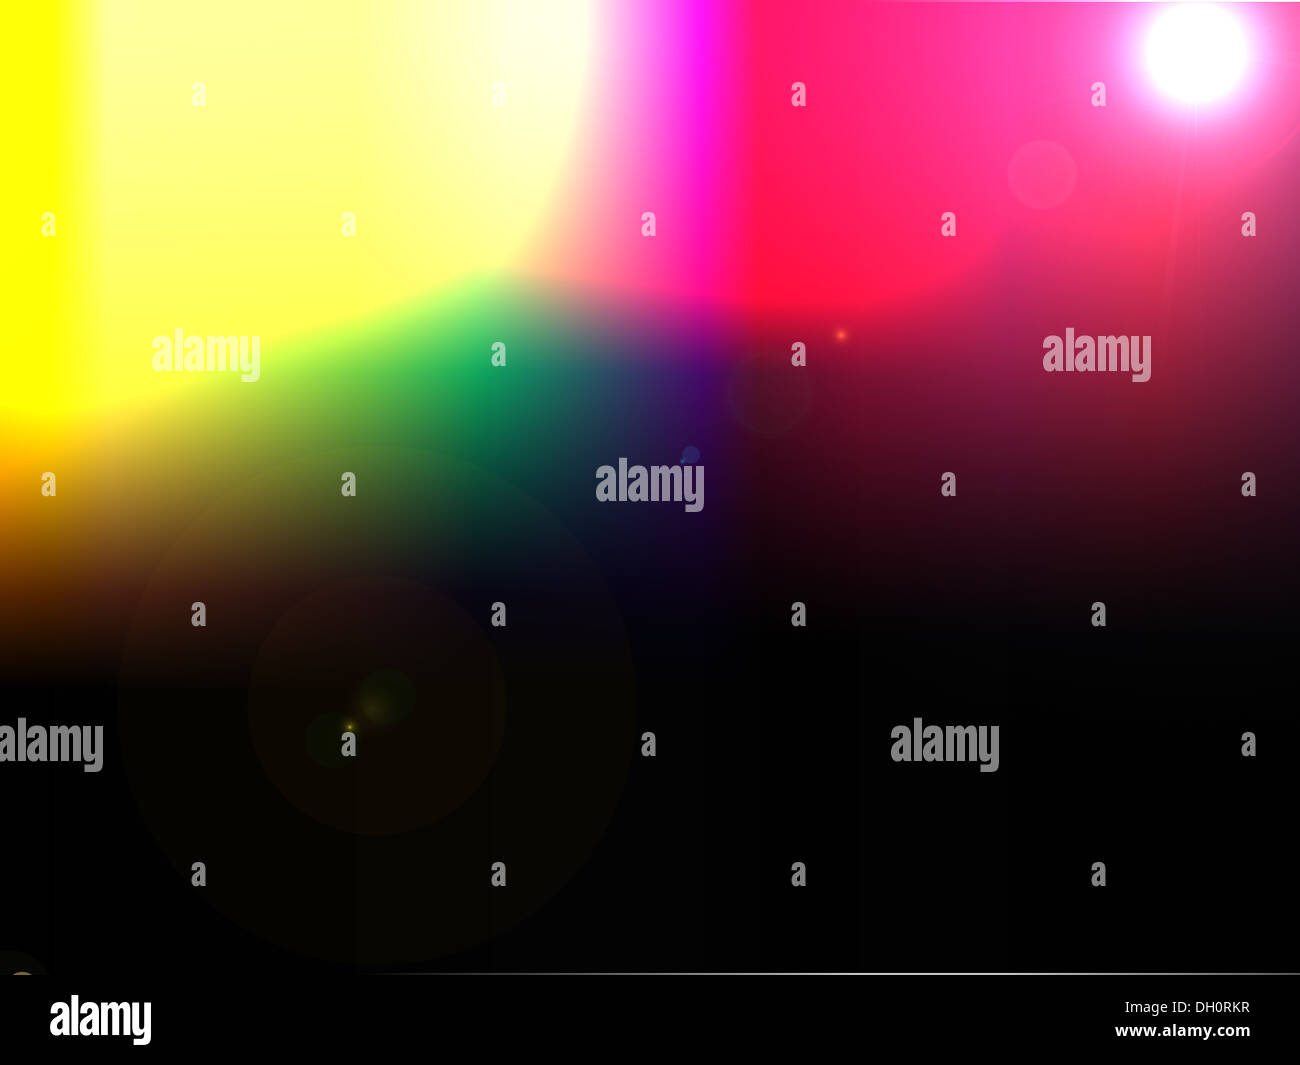 The transfusion of color - Stock Image